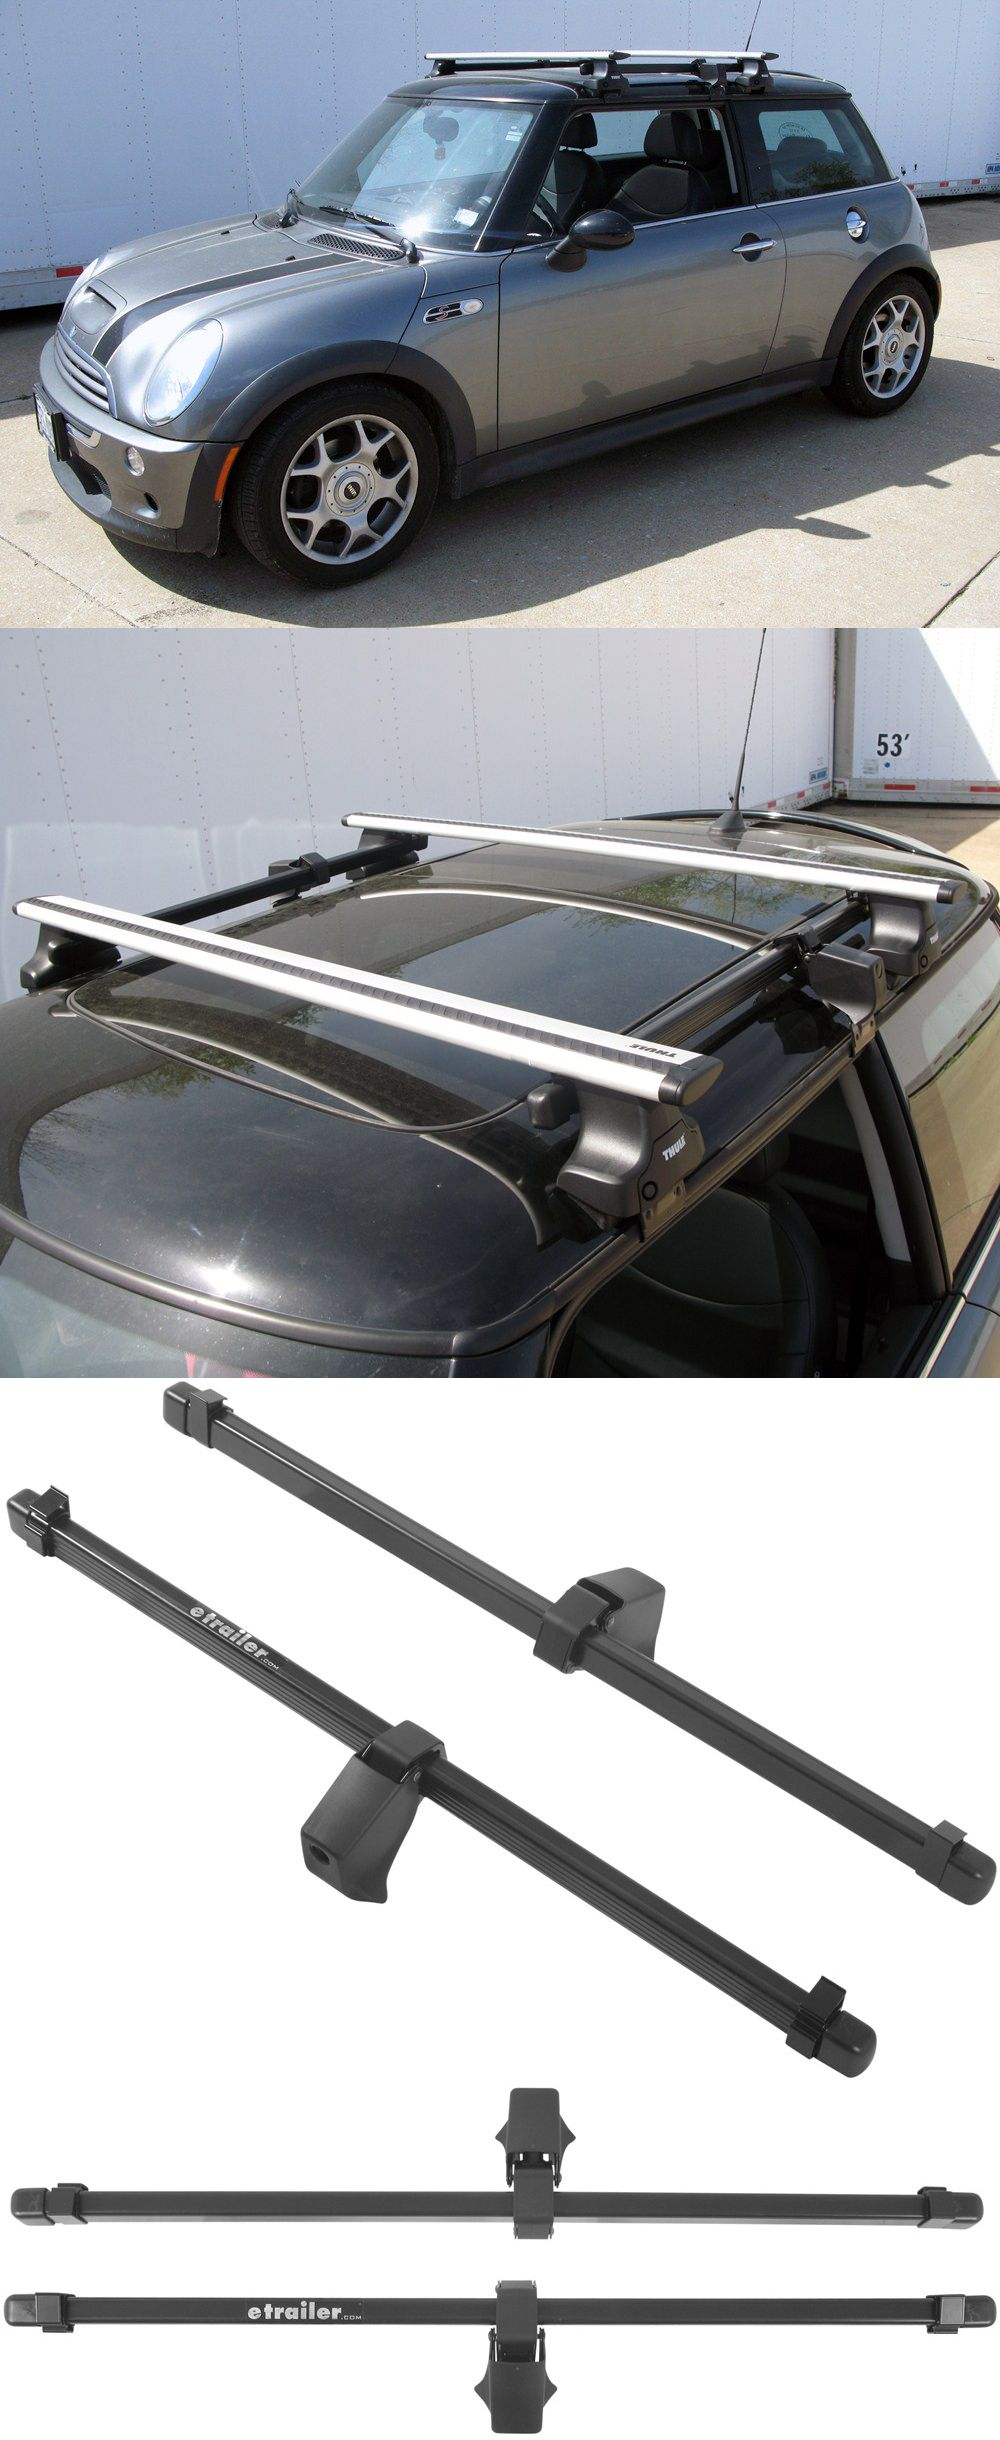 Thule Square Load Bars Attach To The Roof Rack Feet Create And When I Plug Trailer Into Truck They Lock Up Etrailercom A Sturdy